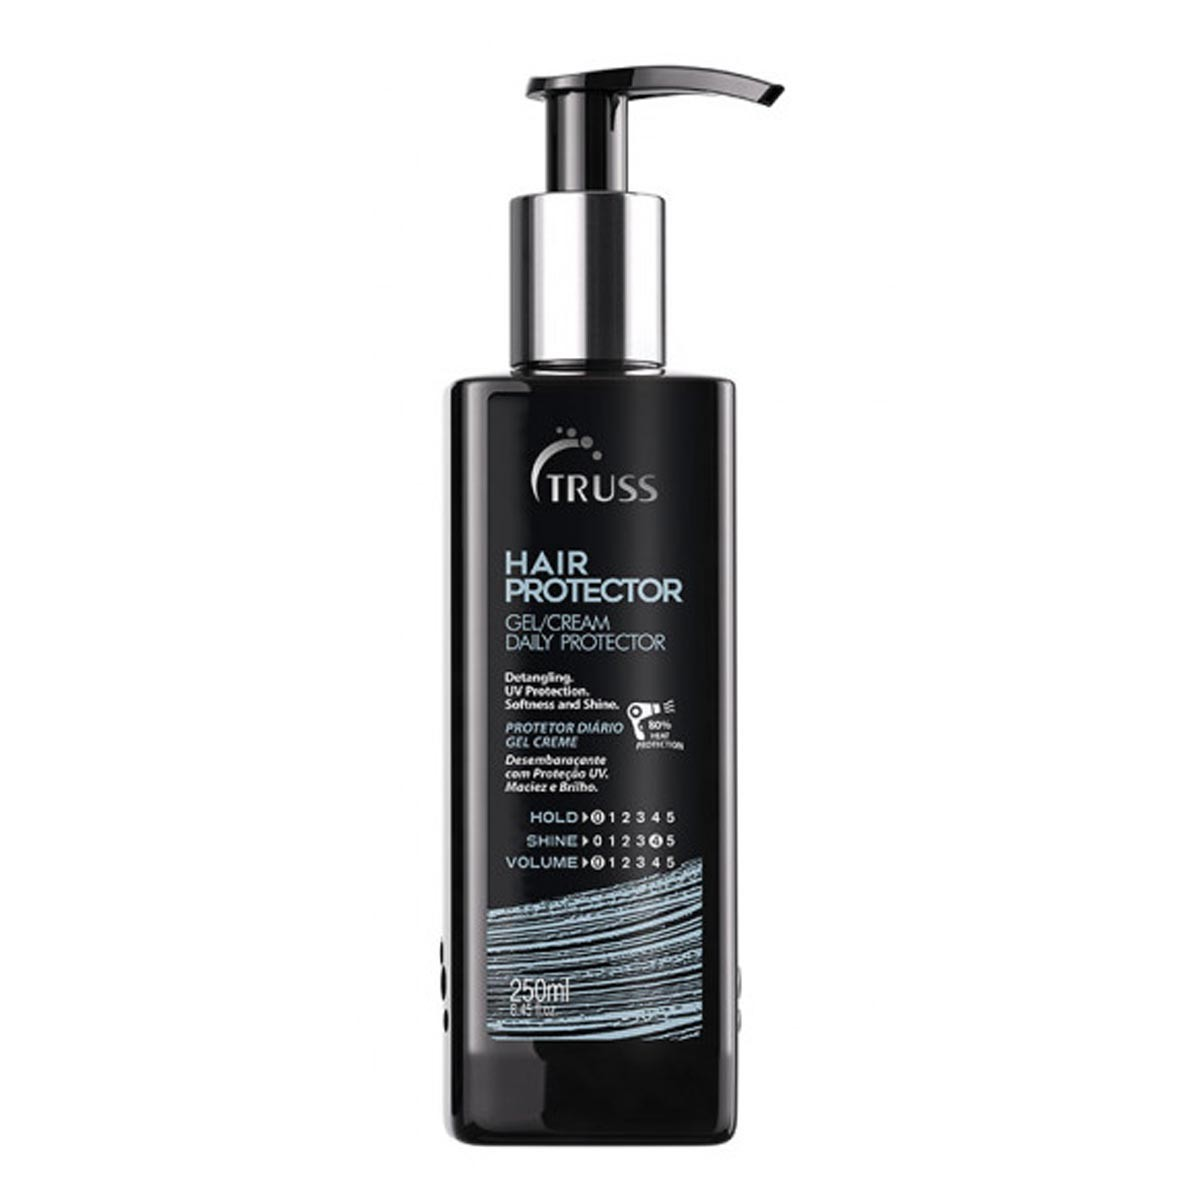 Truss Hair Protector Leave in 250ml